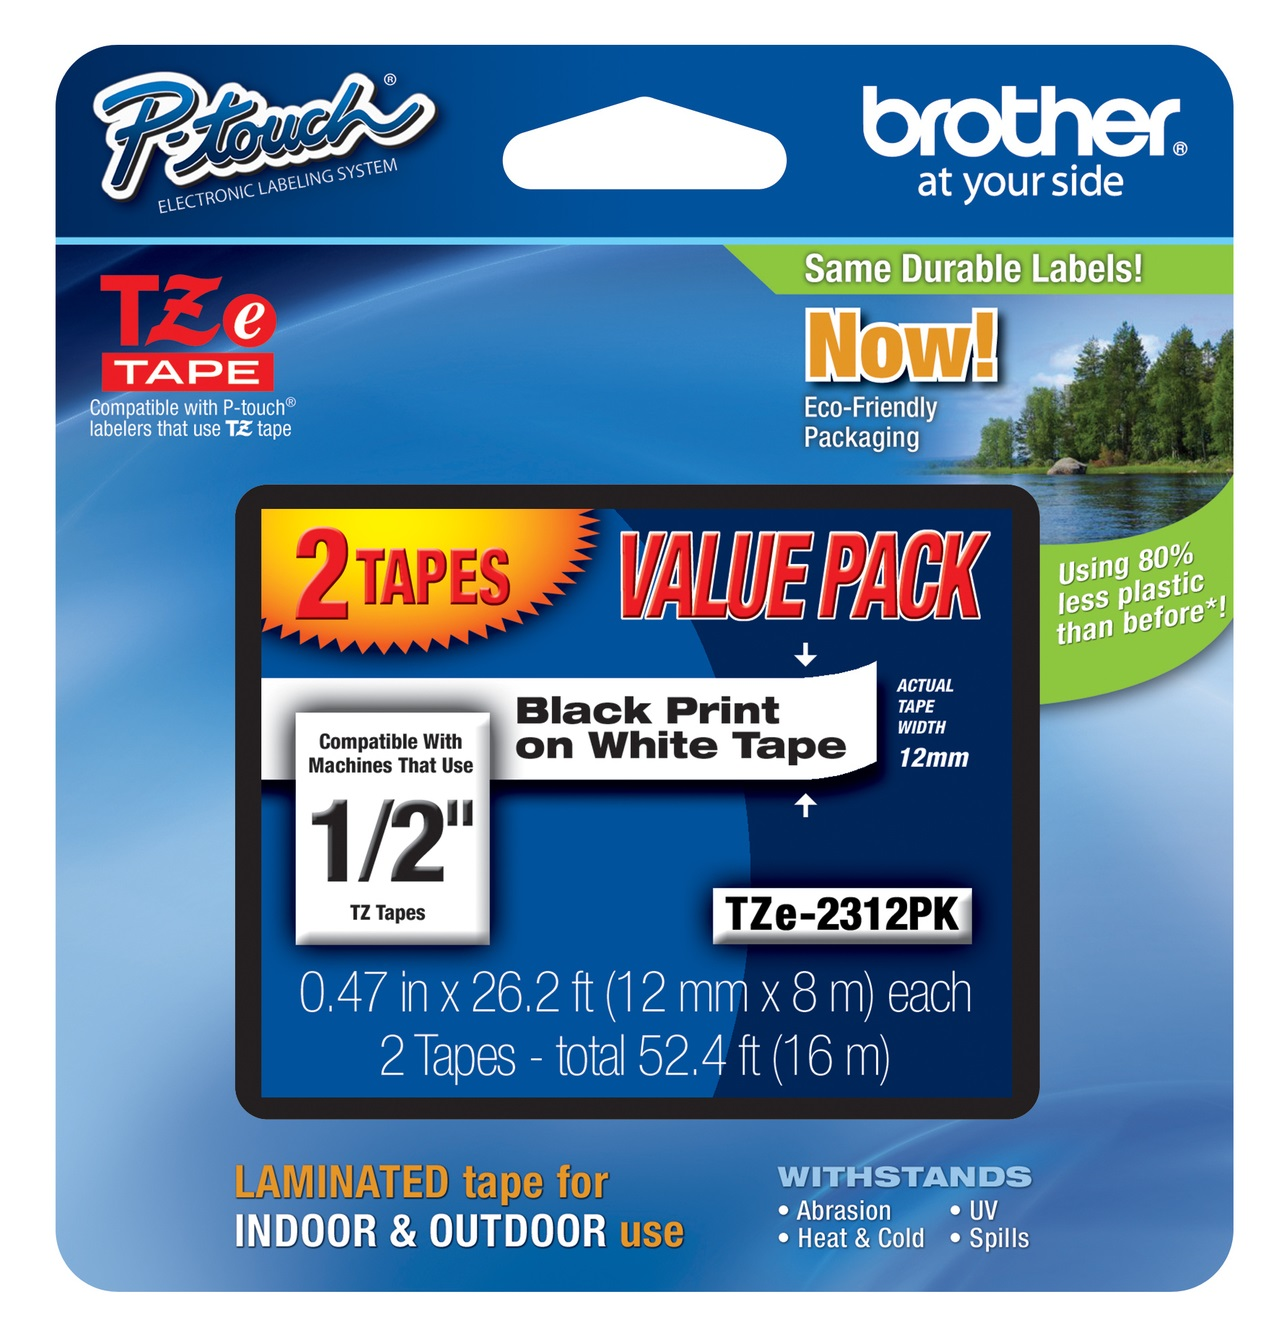 Genuine Brother TZe-231 Black On White Laminated P-Touch Labelling Tape Twin Pack 12mm x 8m (TZE-231 Tape)